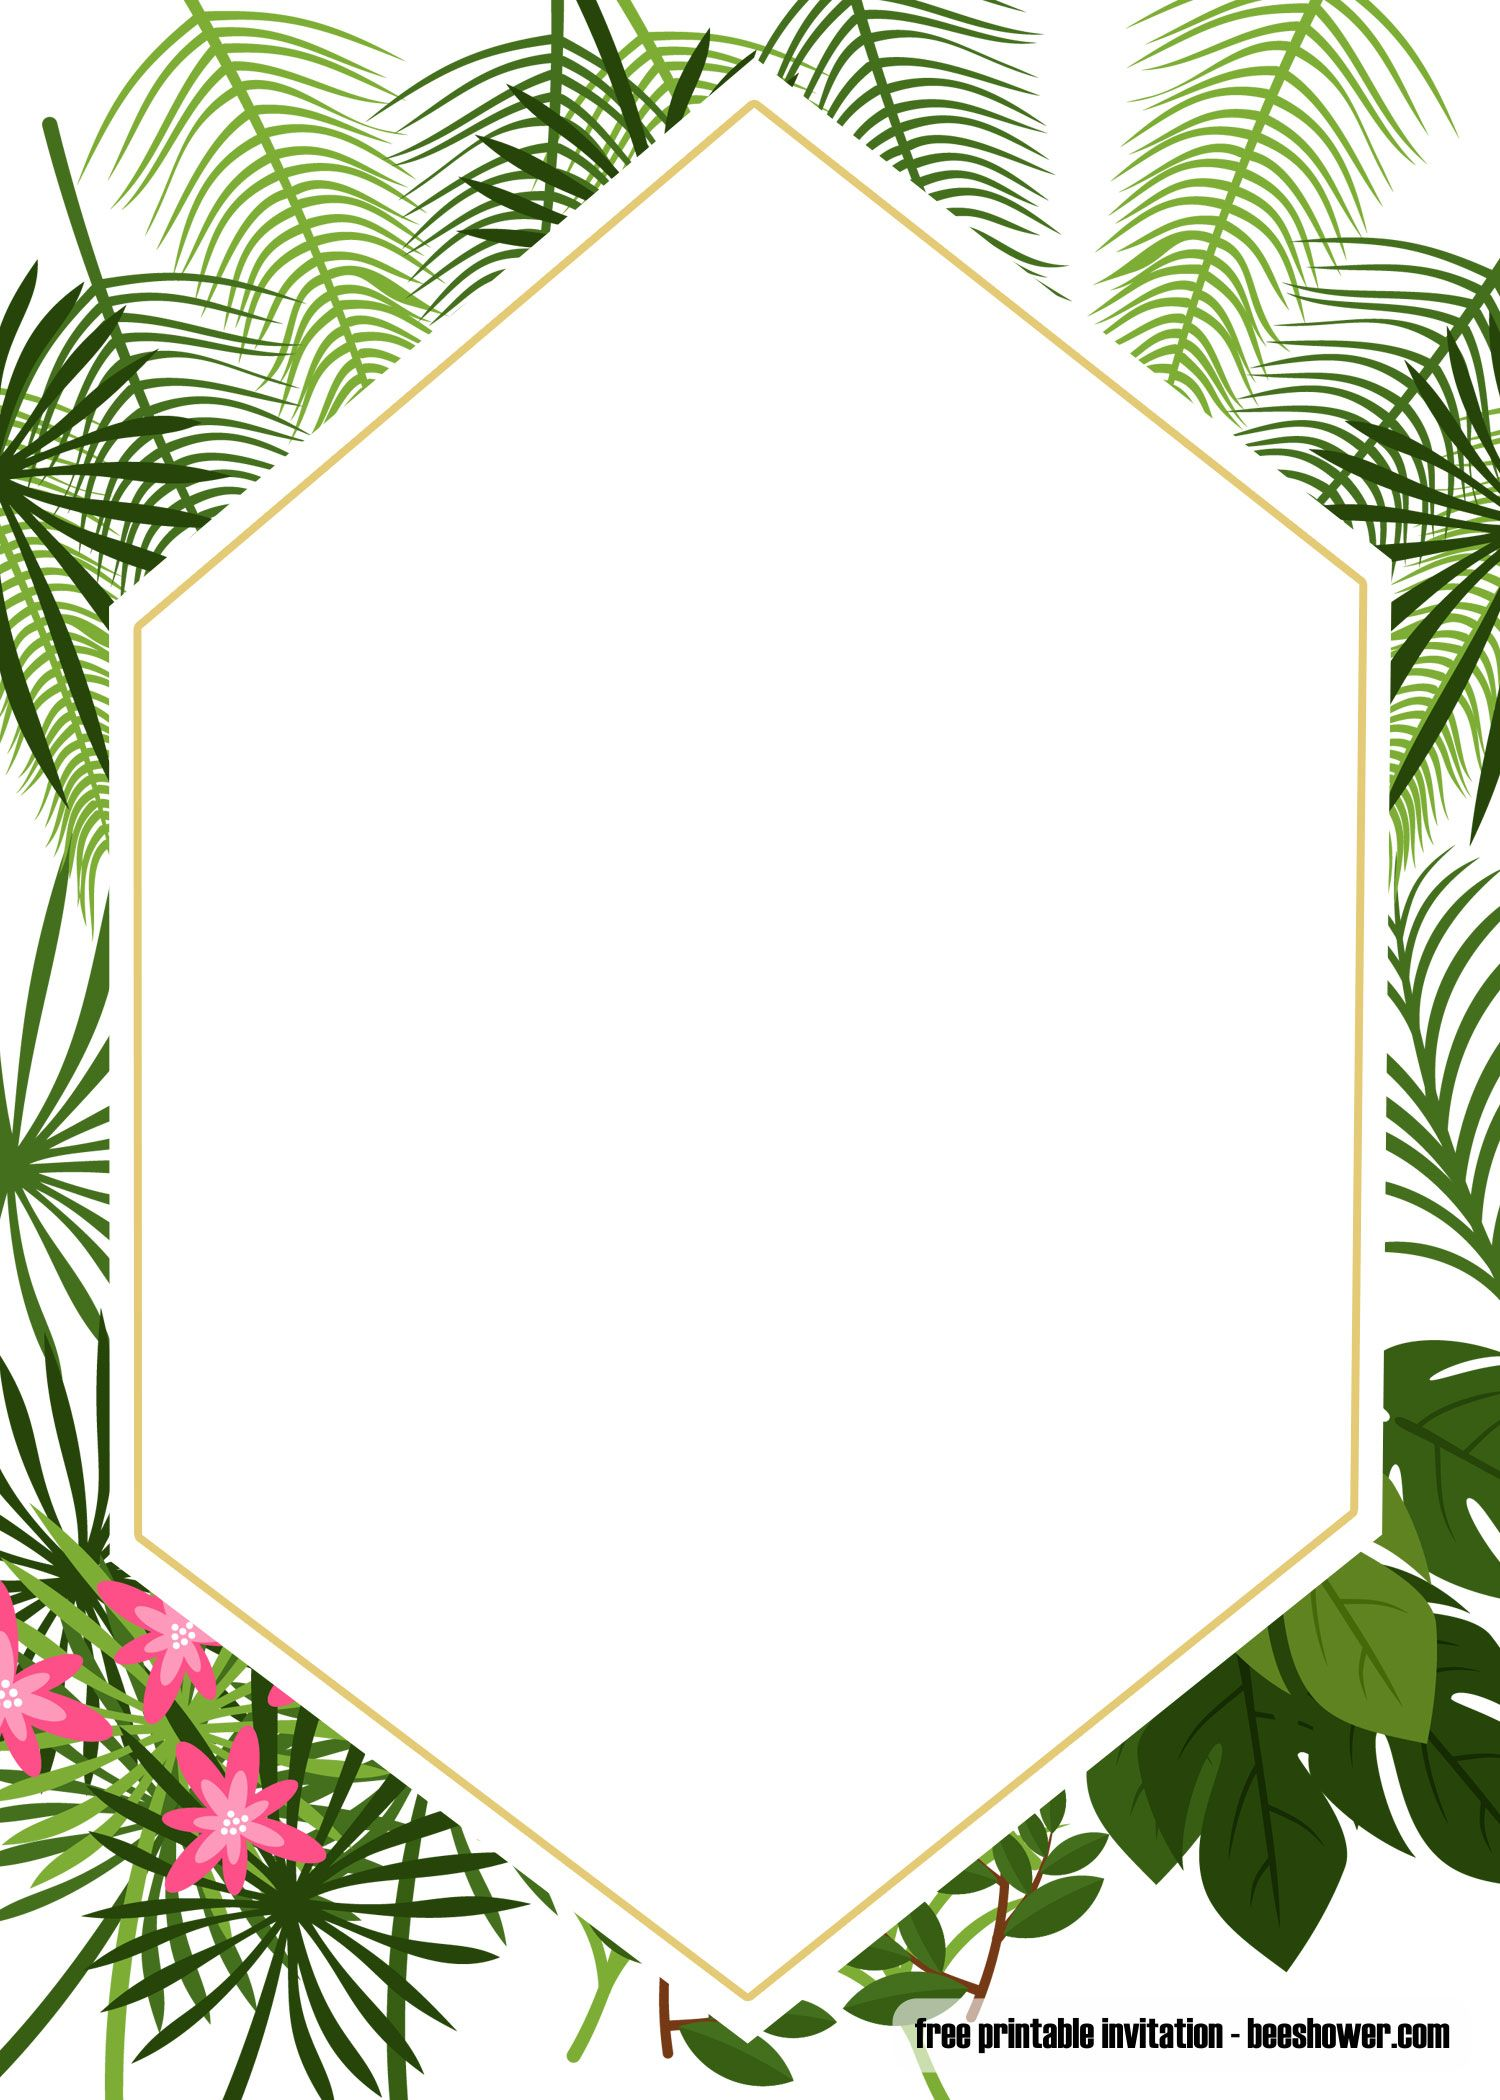 Get Free Printable Tropical Baby Shower Invitation Template